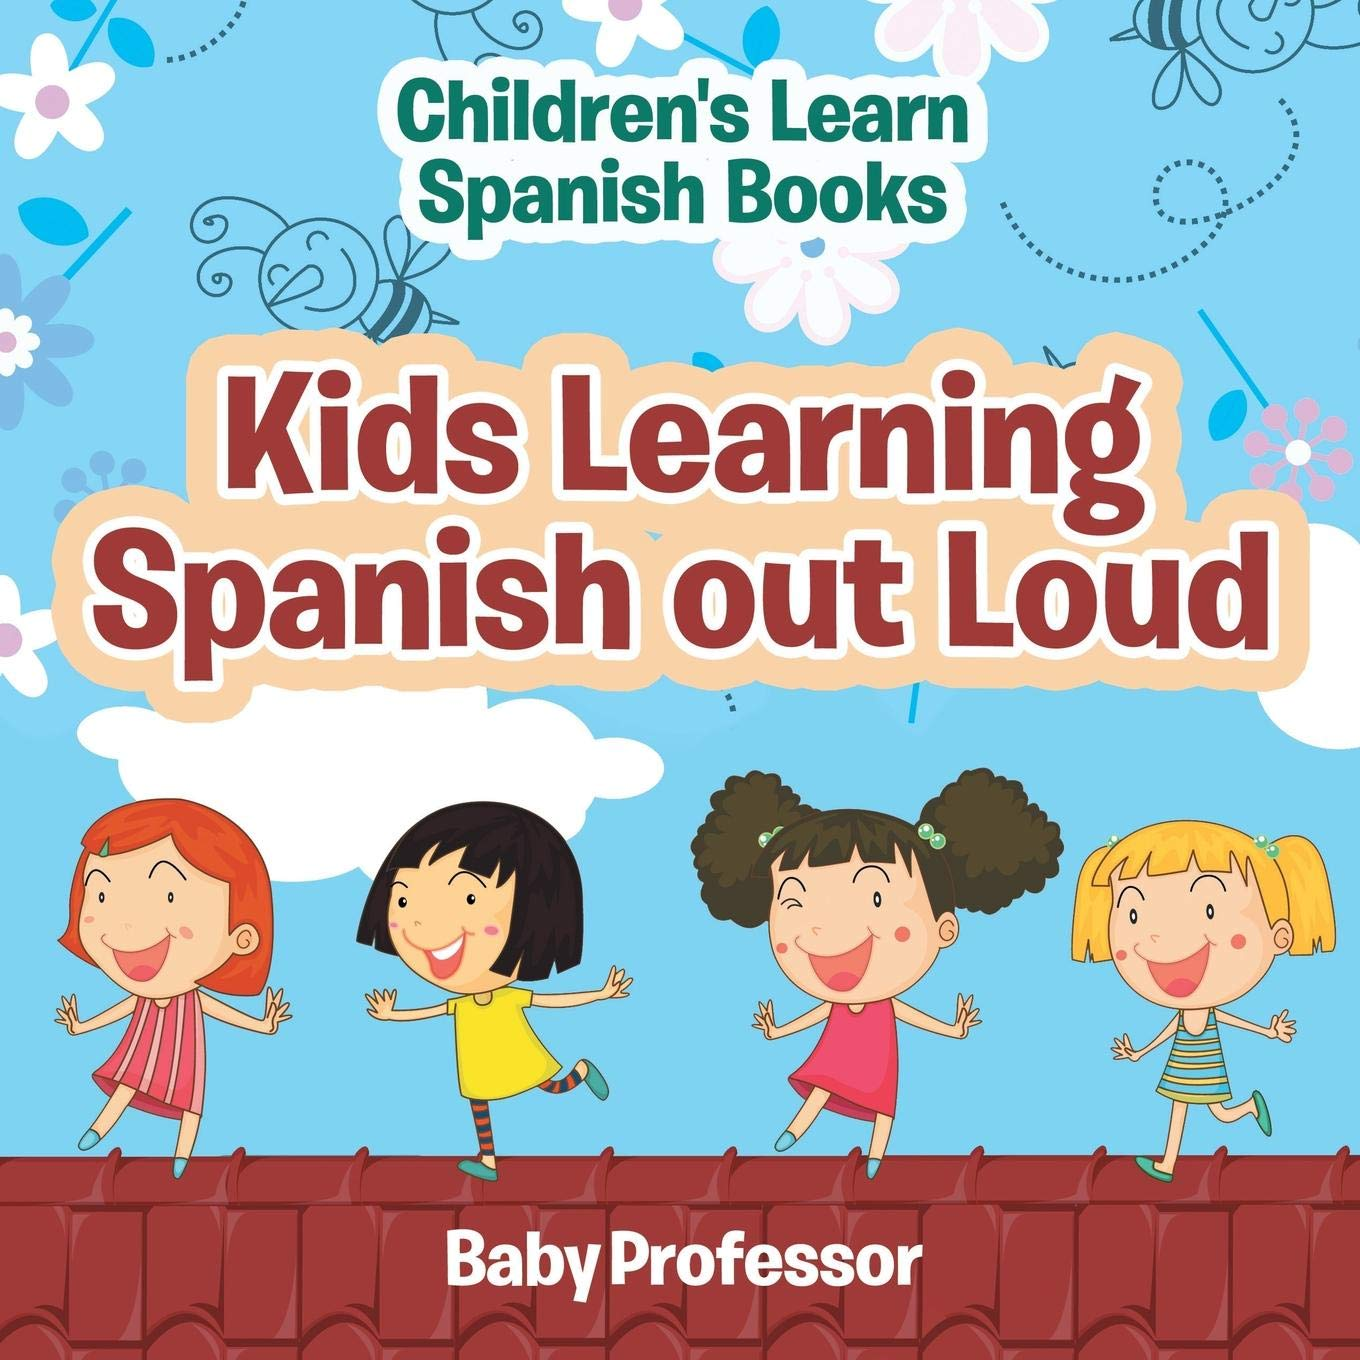 Kids Learning Spanish out Loud | Children's Learn Spanish